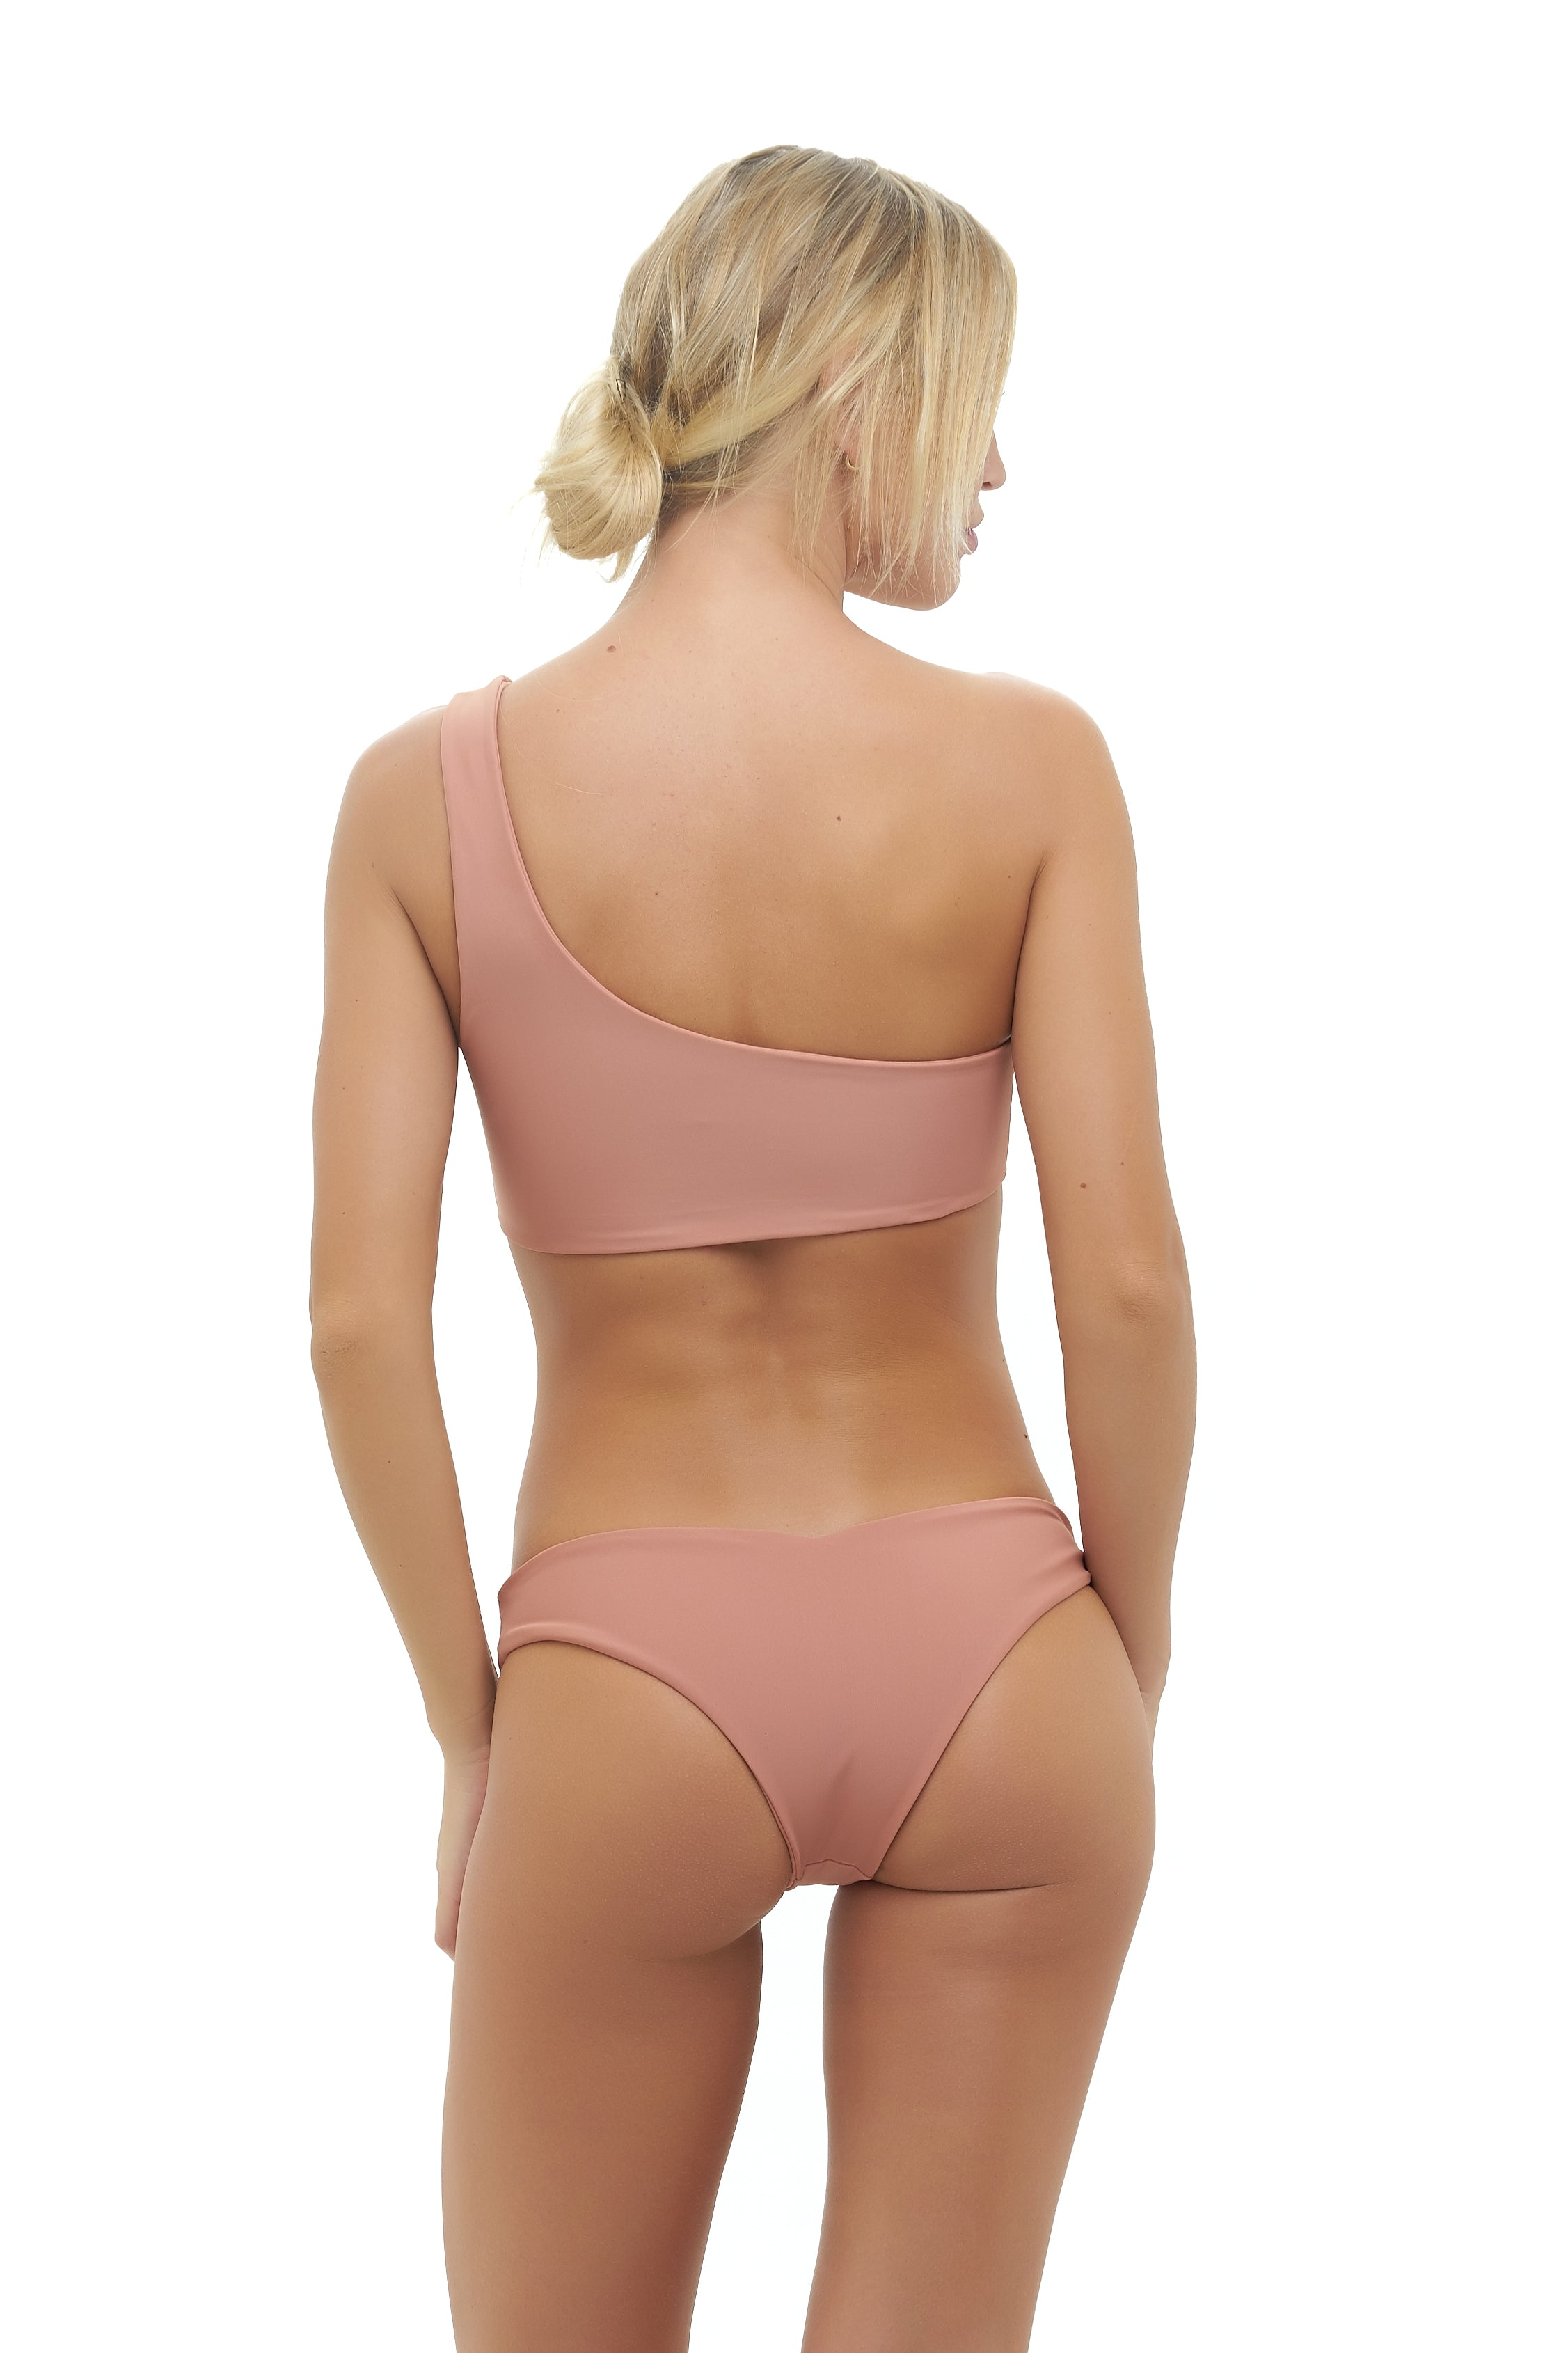 Storm Swimwear - Cinque Terre - One shoulder bikini top in Sun Kissed